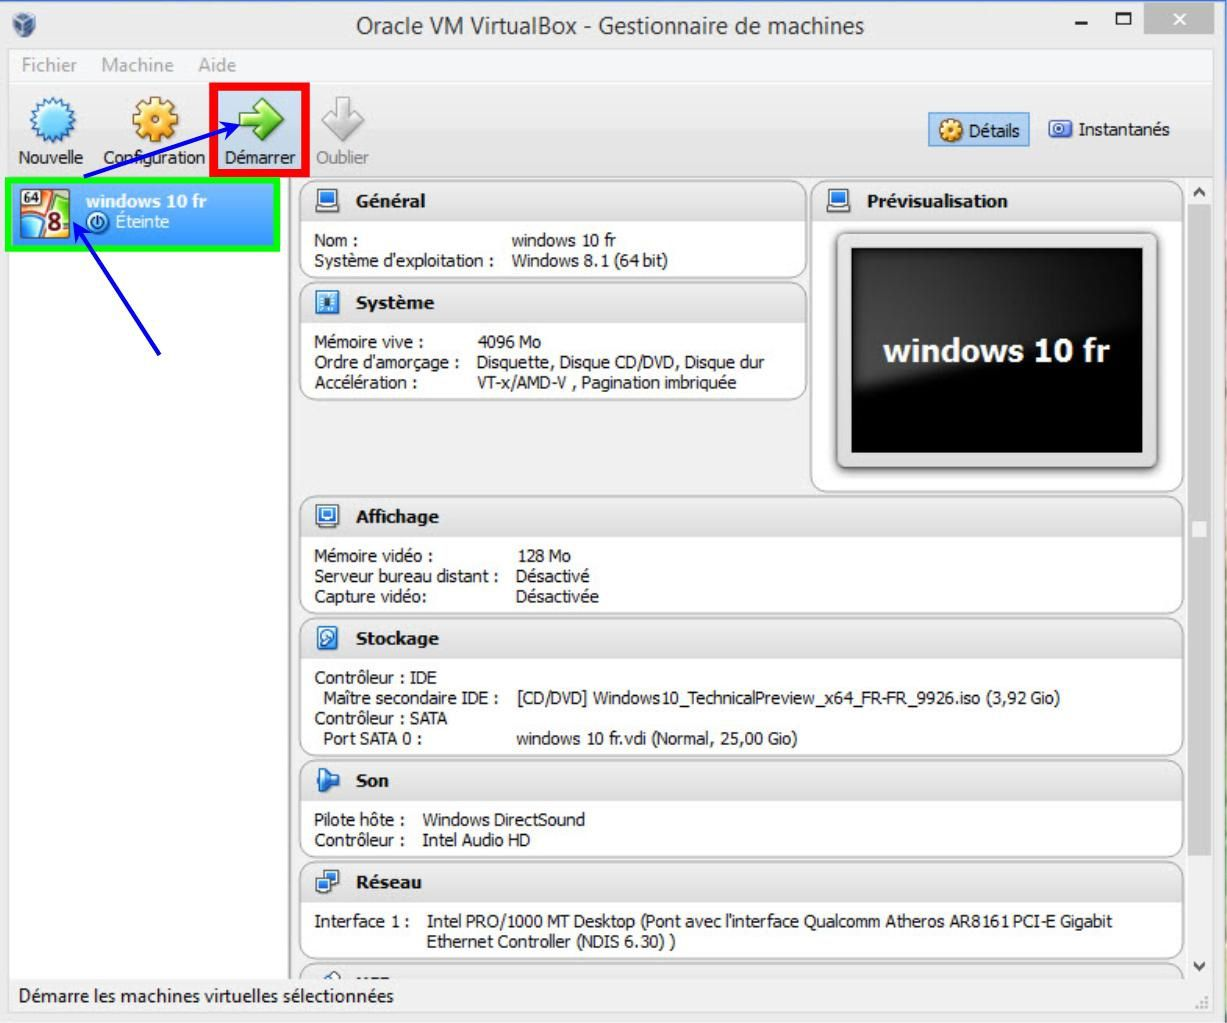 Installer Windows 10 fr sous virtualbox